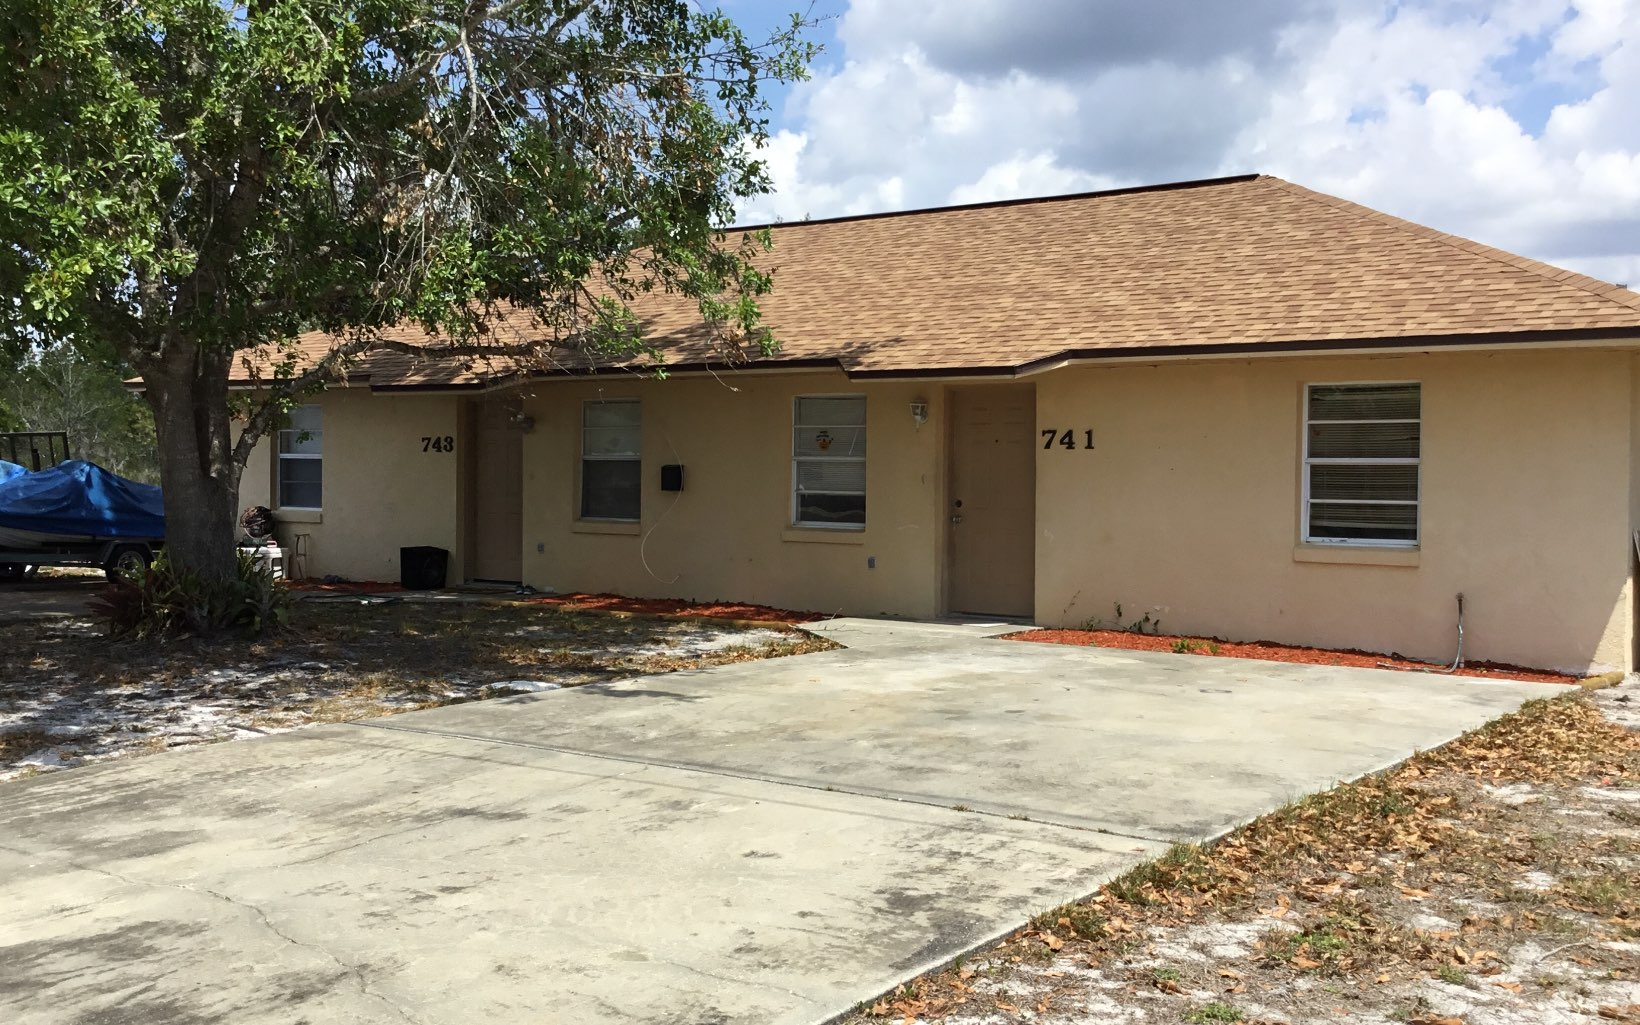 741 Washington Blvd Nw, Lake Placid, FL 33852